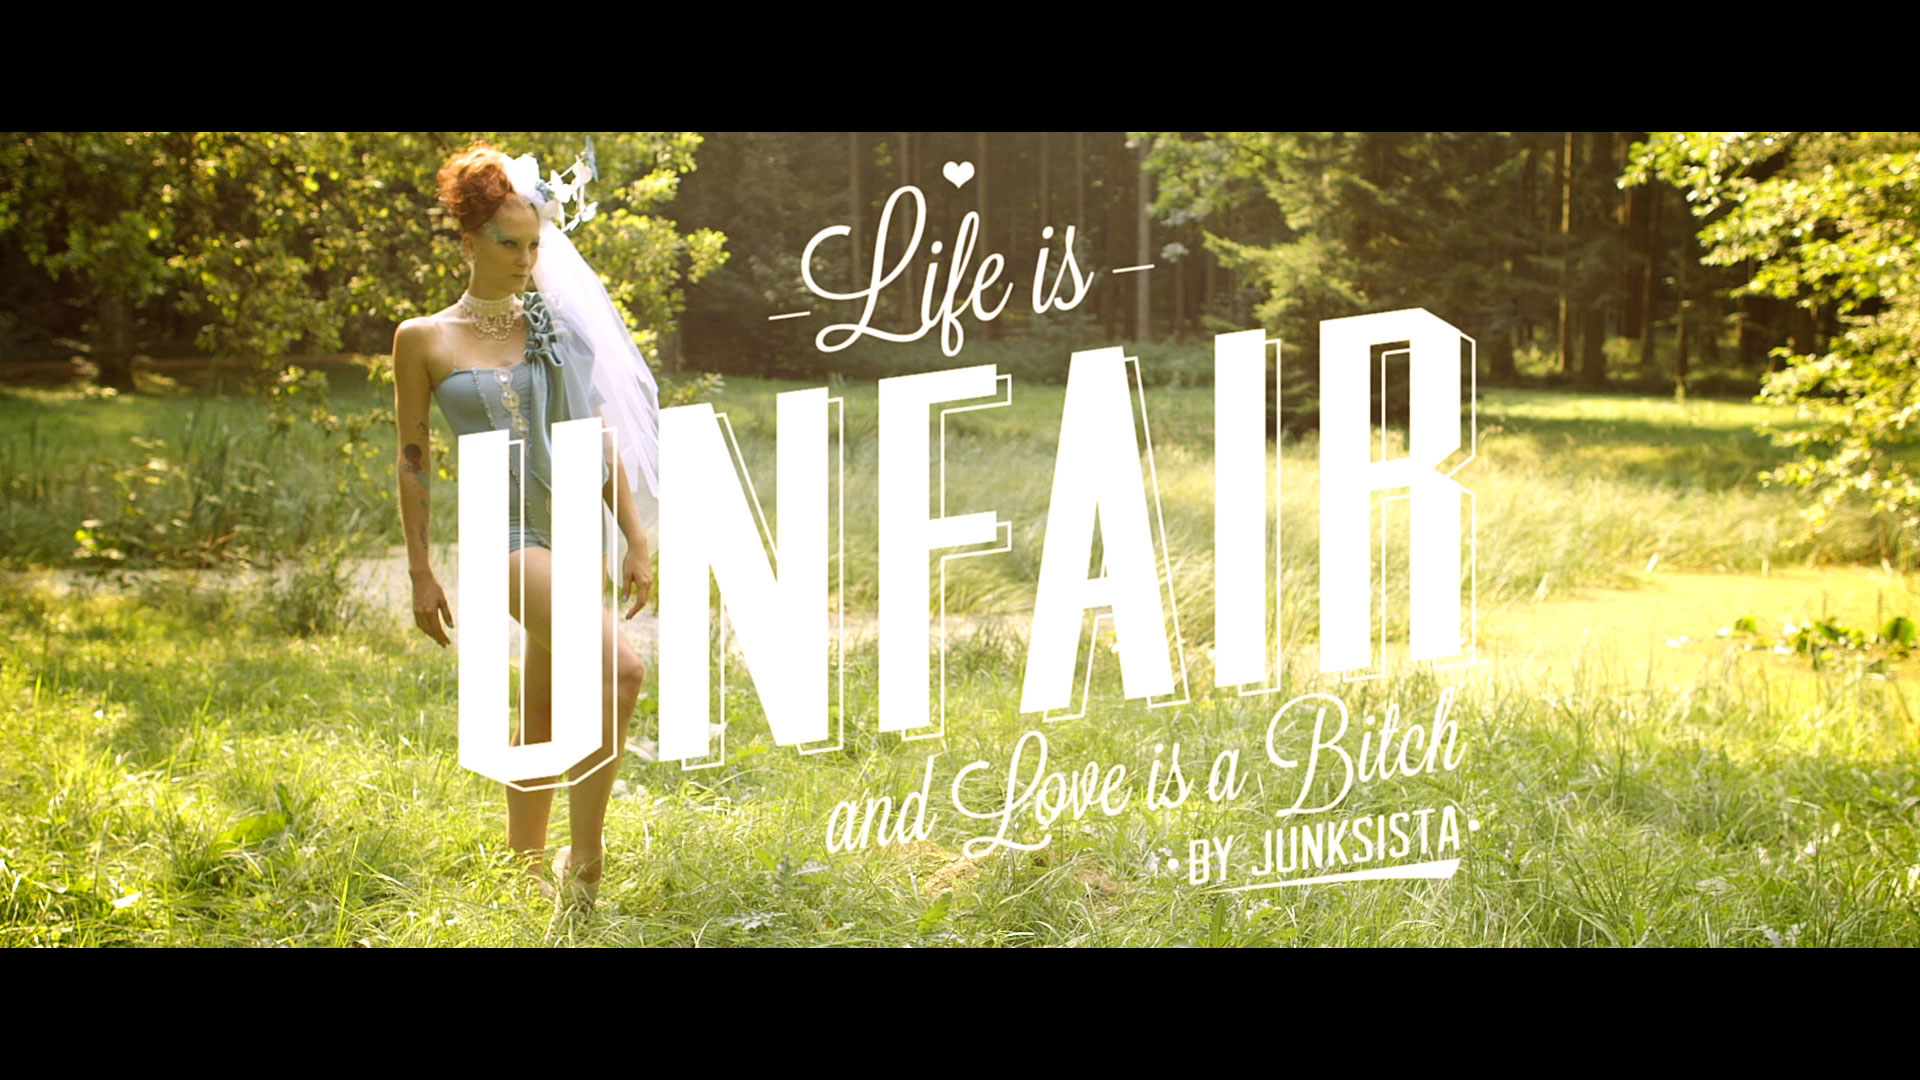 Life is unfair motion pictures with Luisa Raukopf